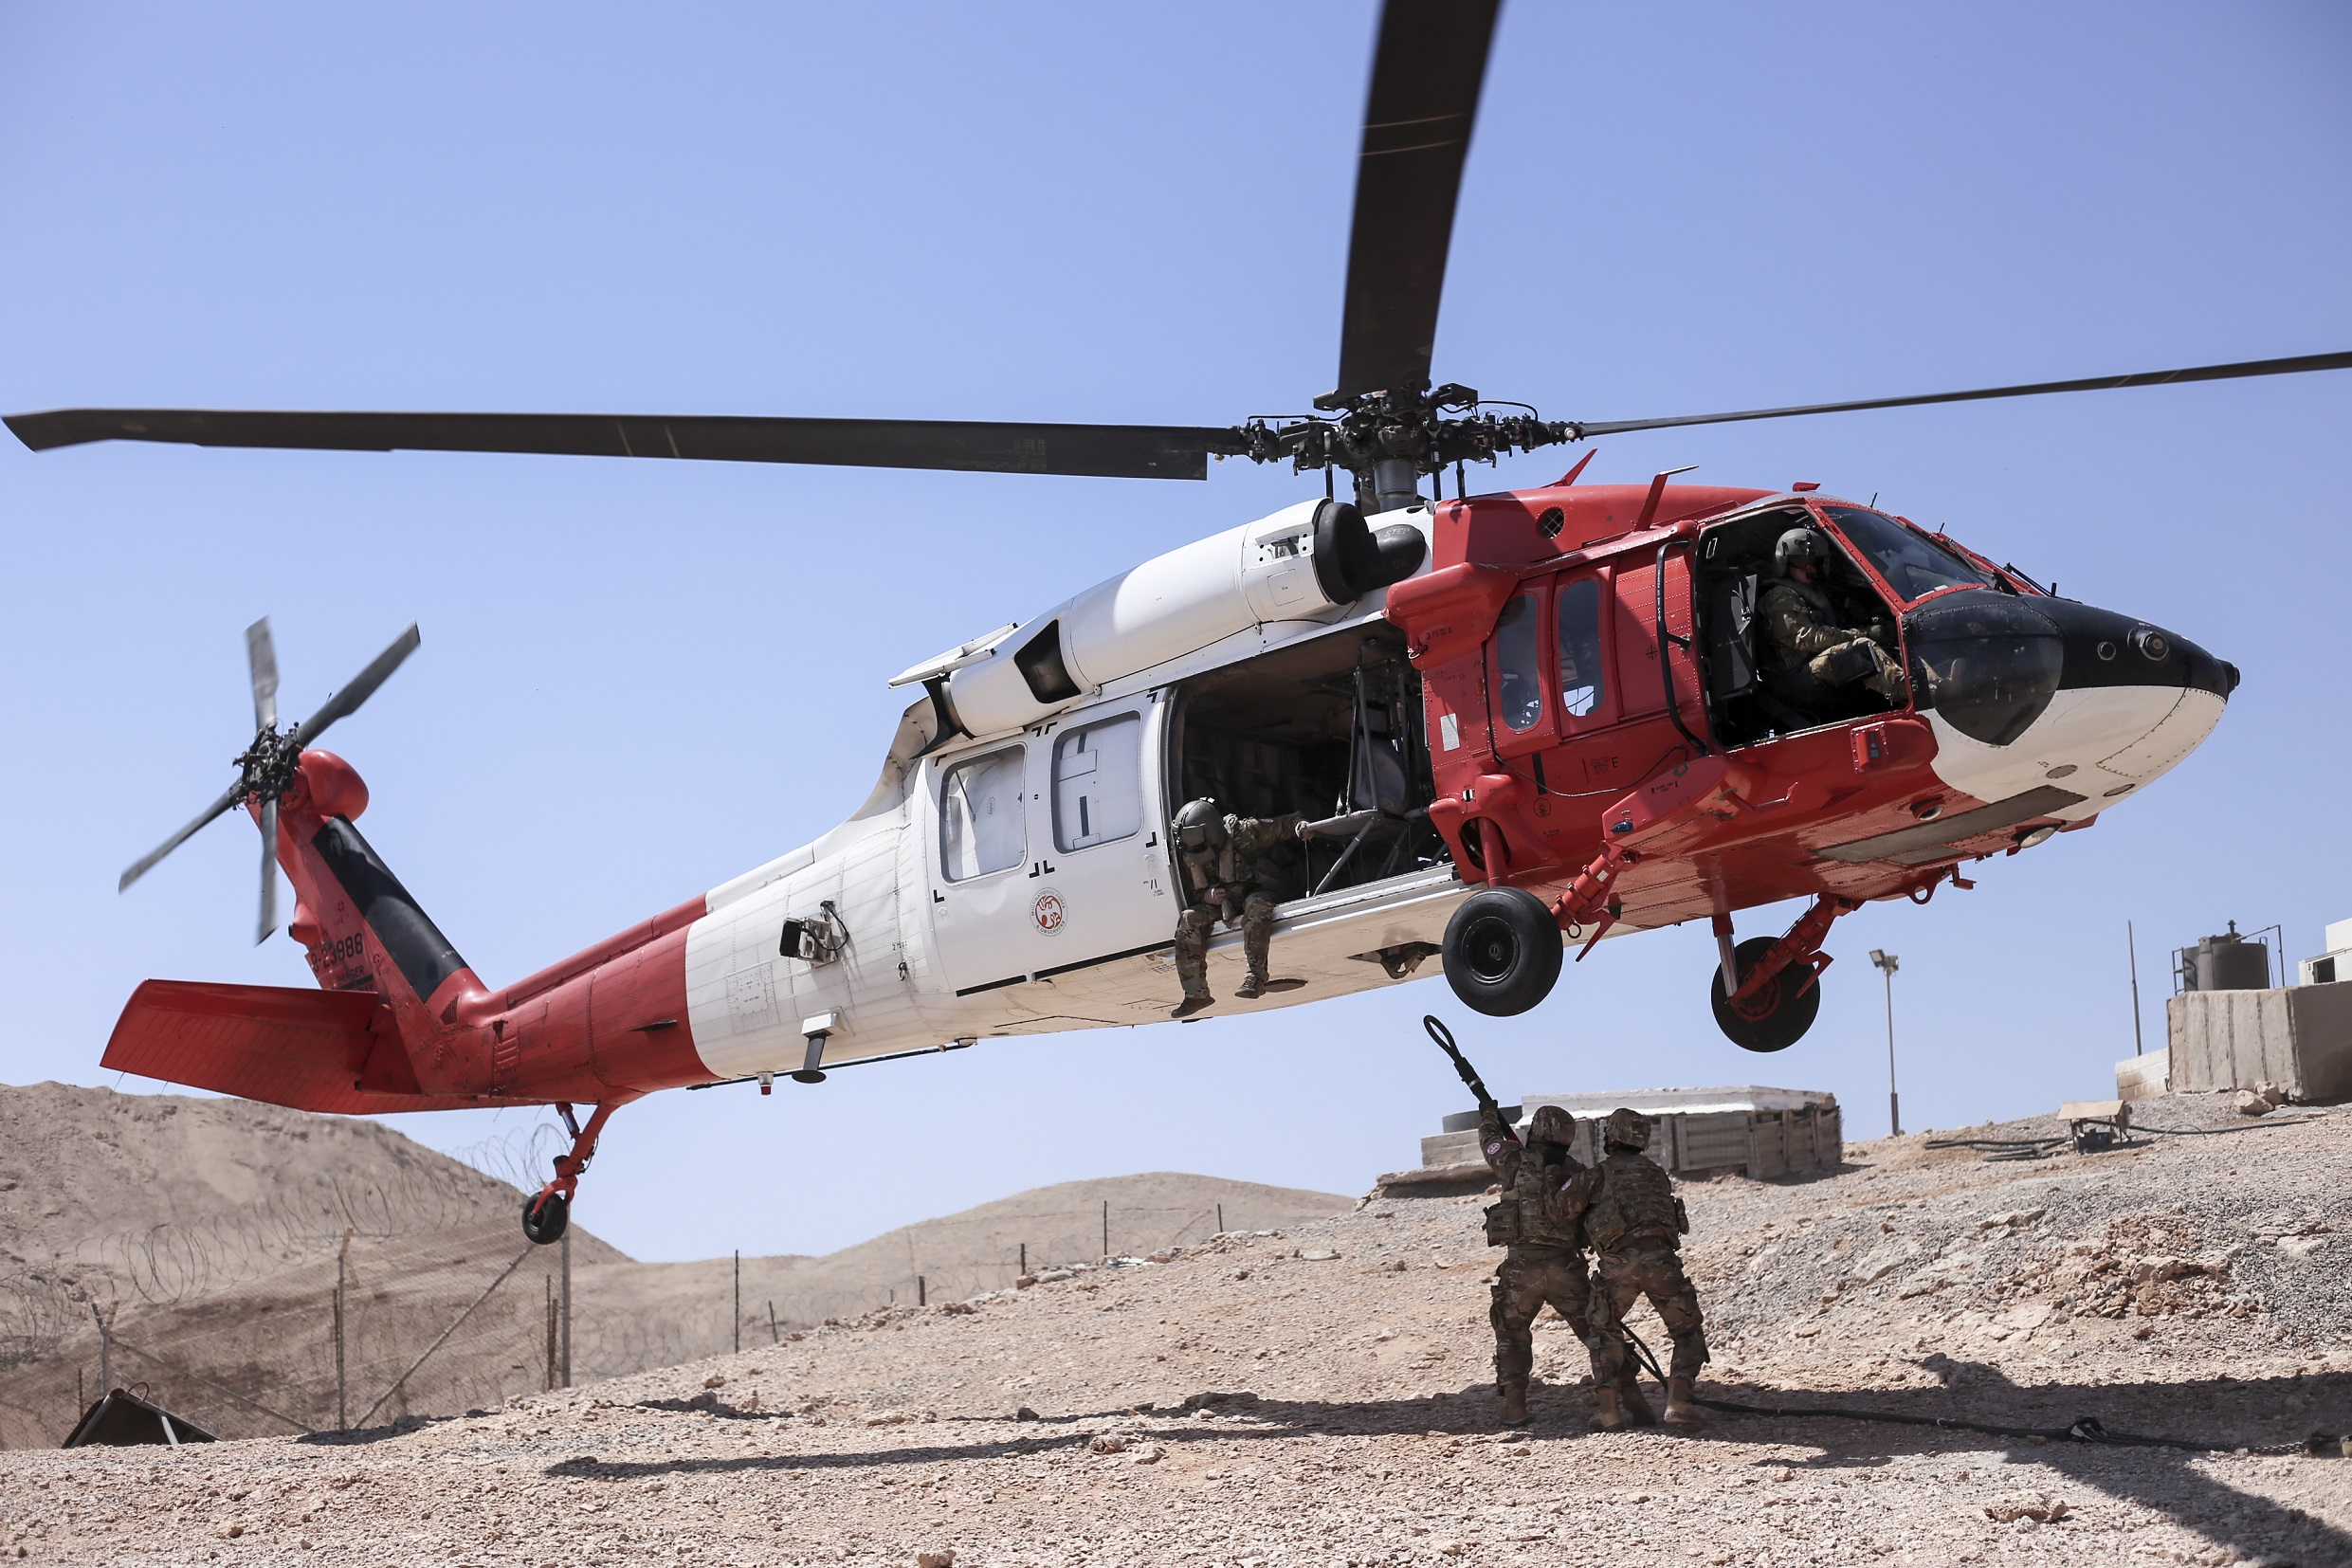 U.S. Army Black Hawk helicopter crashes in Egypt